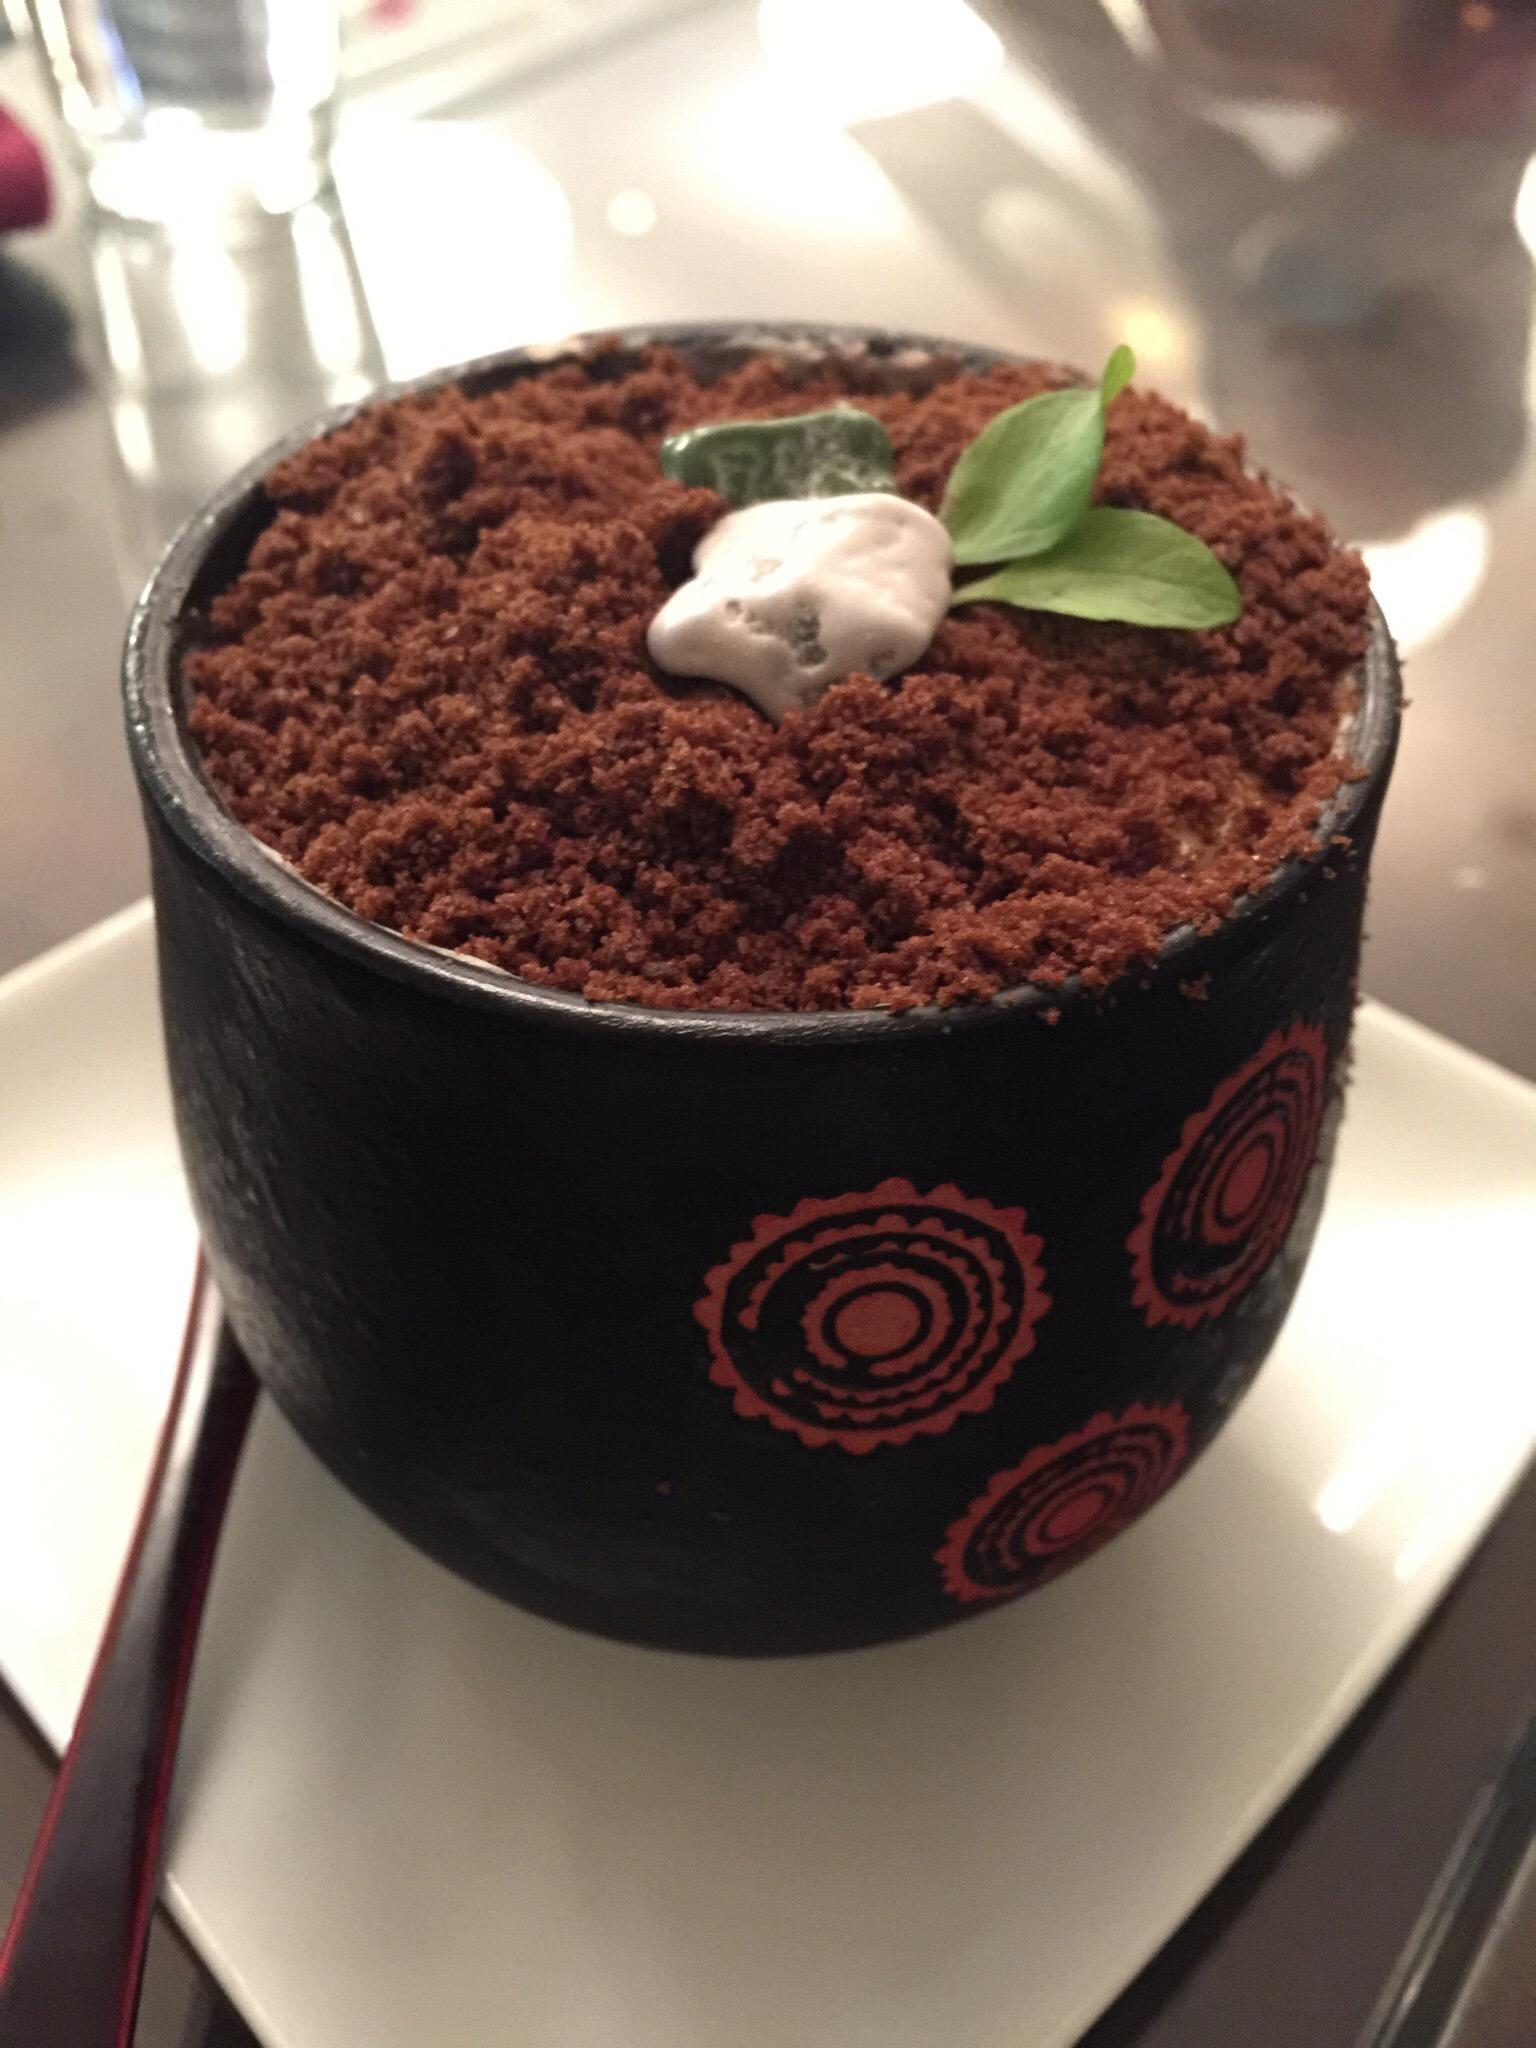 The Gaya Applecross